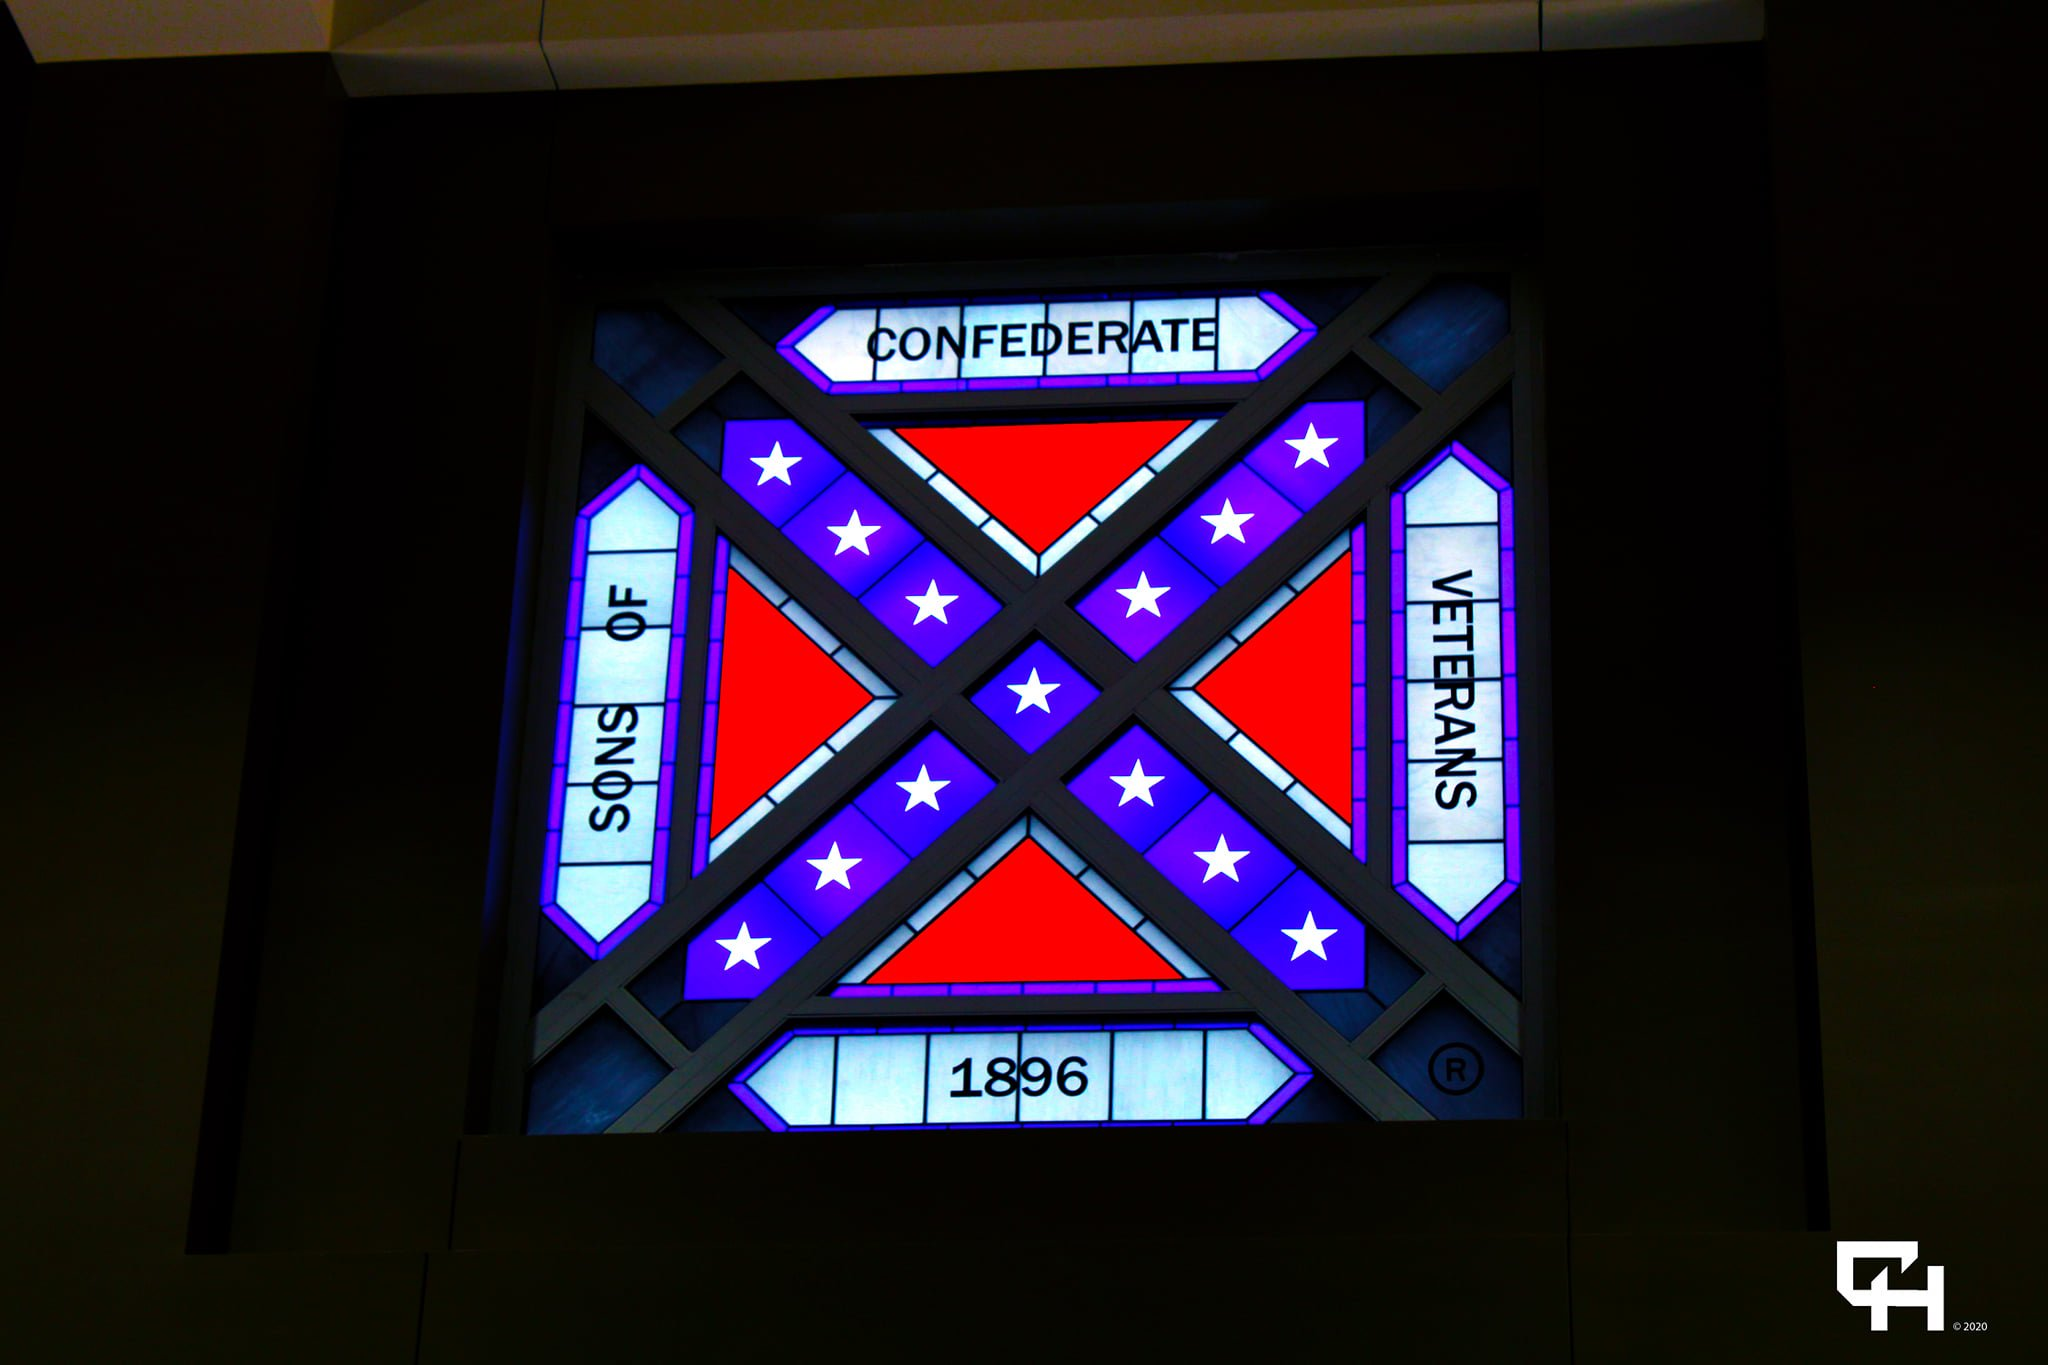 68 The National Confederate Museum